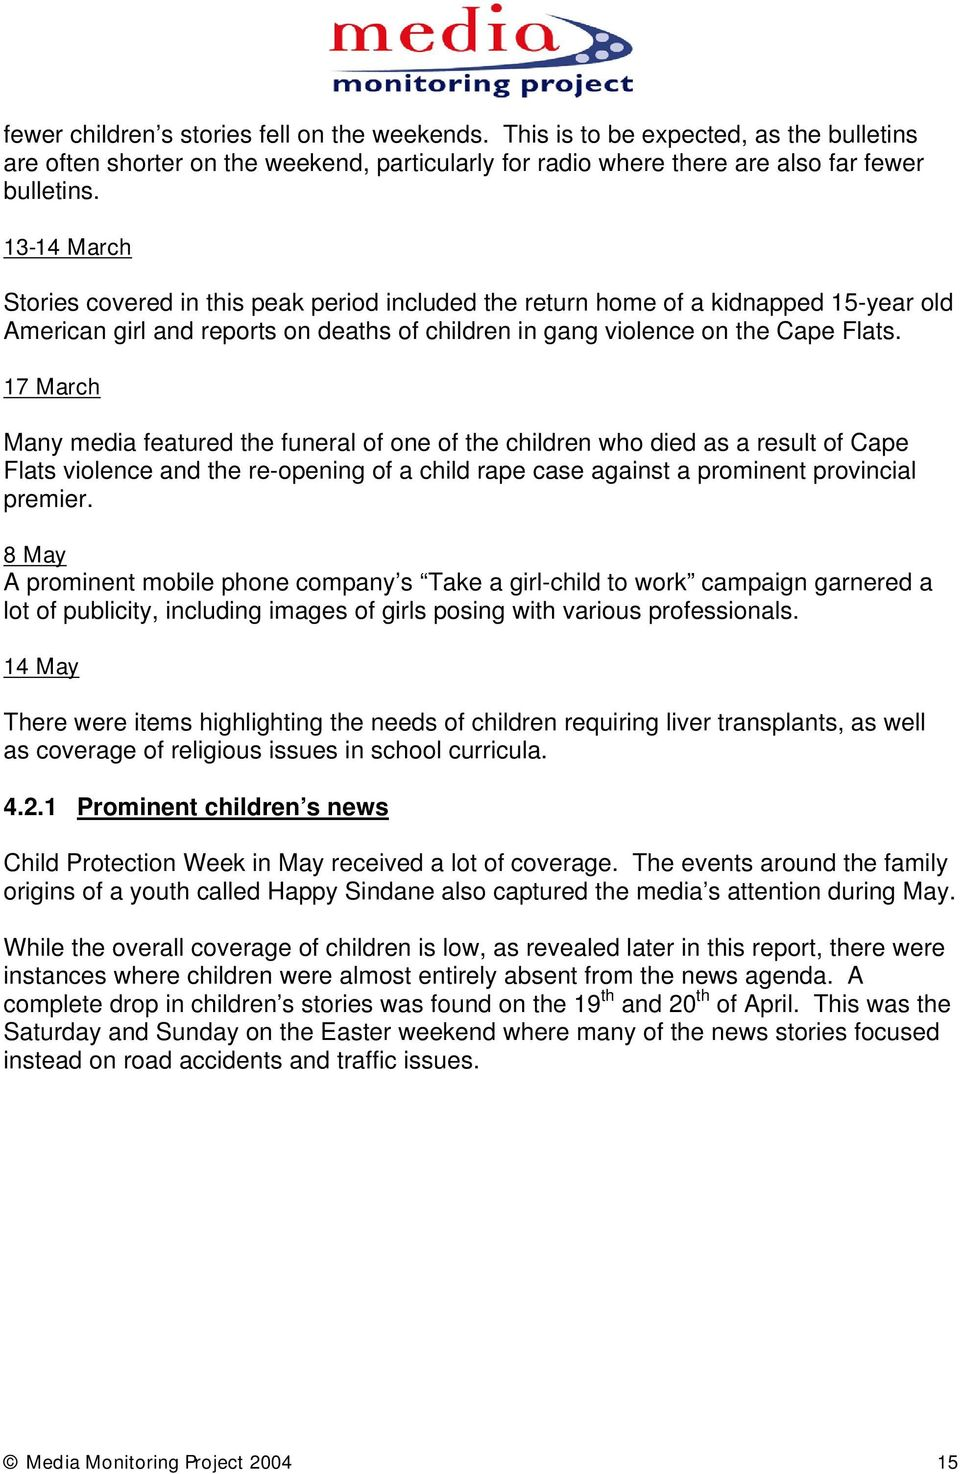 17 March Many media featured the funeral of one of the children who died as a result of Cape Flats violence and the re-opening of a child rape case against a prominent provincial premier.